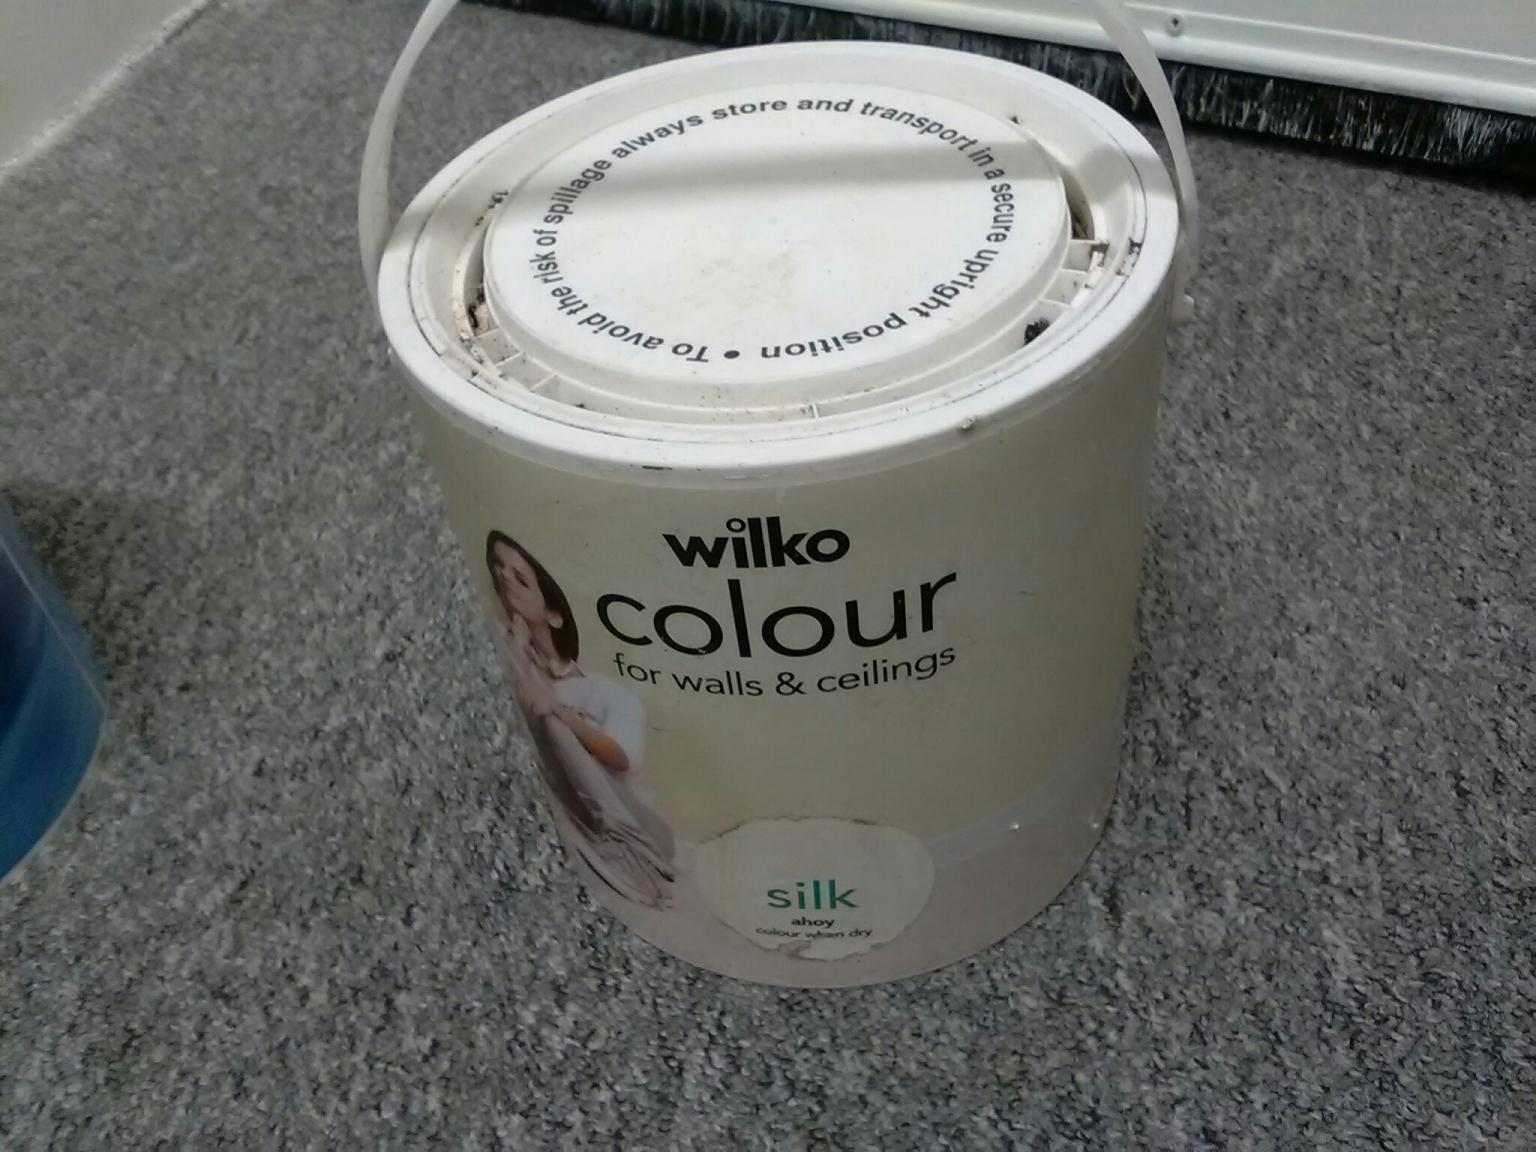 Wilko Colour Emulsion 2 5l Tub In Wa10 Helens For 5 00 For Sale Shpock